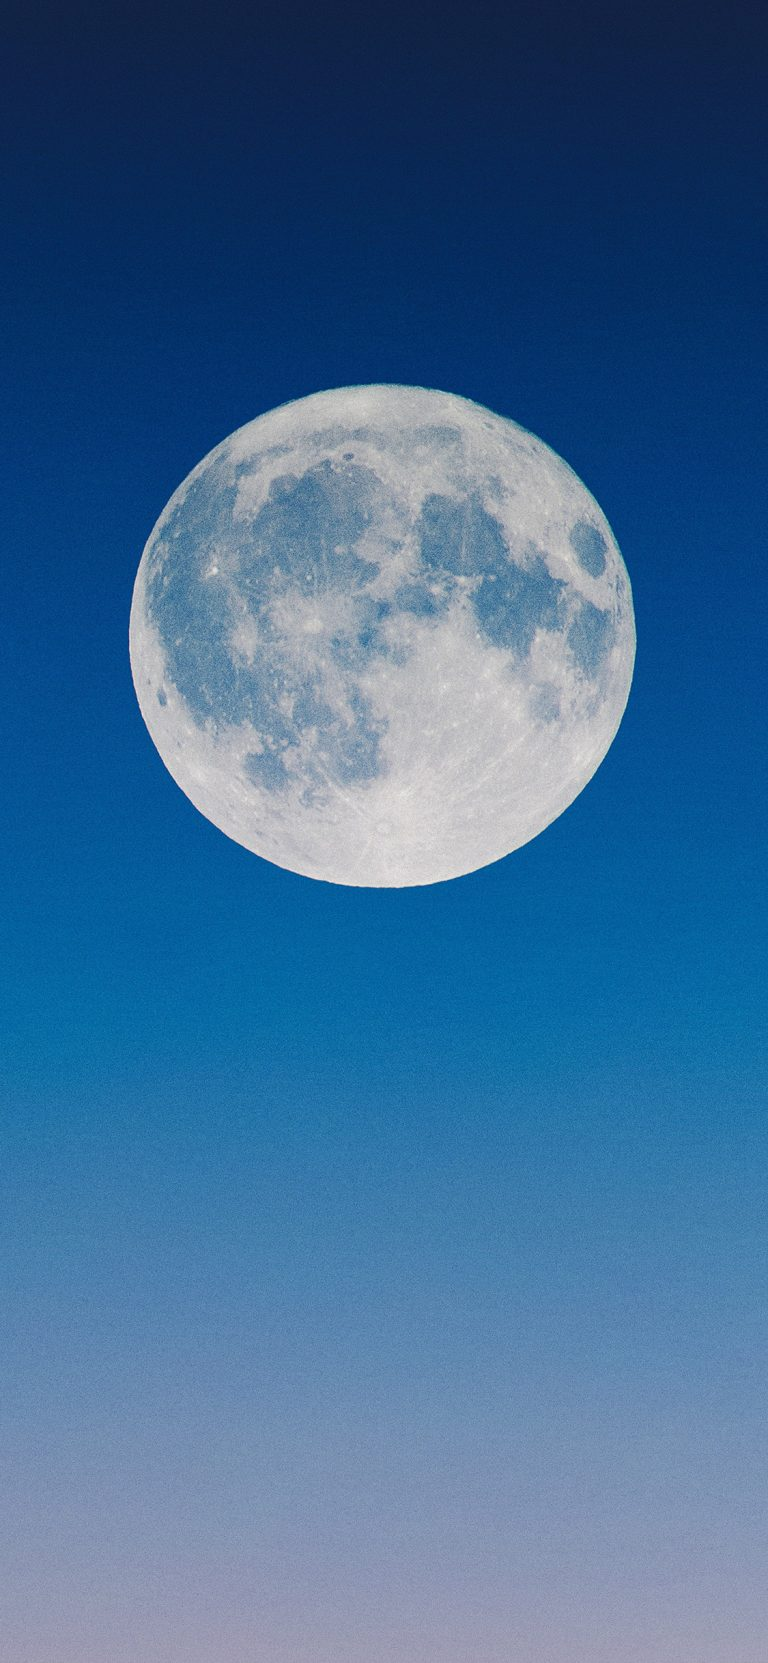 moon wallpaper 110